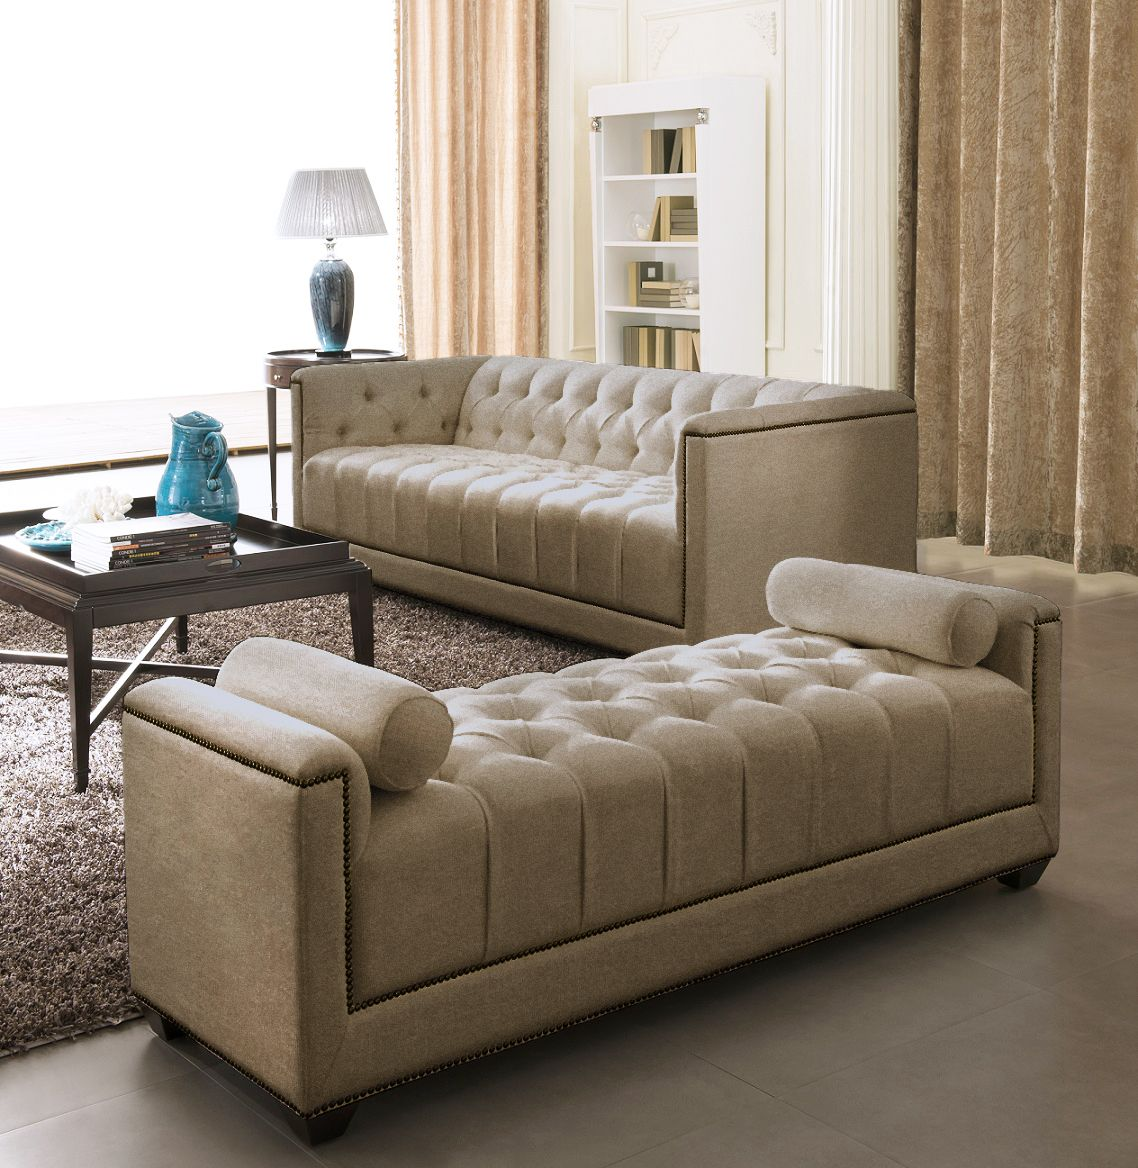 Sofa Designs. Modern Sofa Set Designs For Living Room E